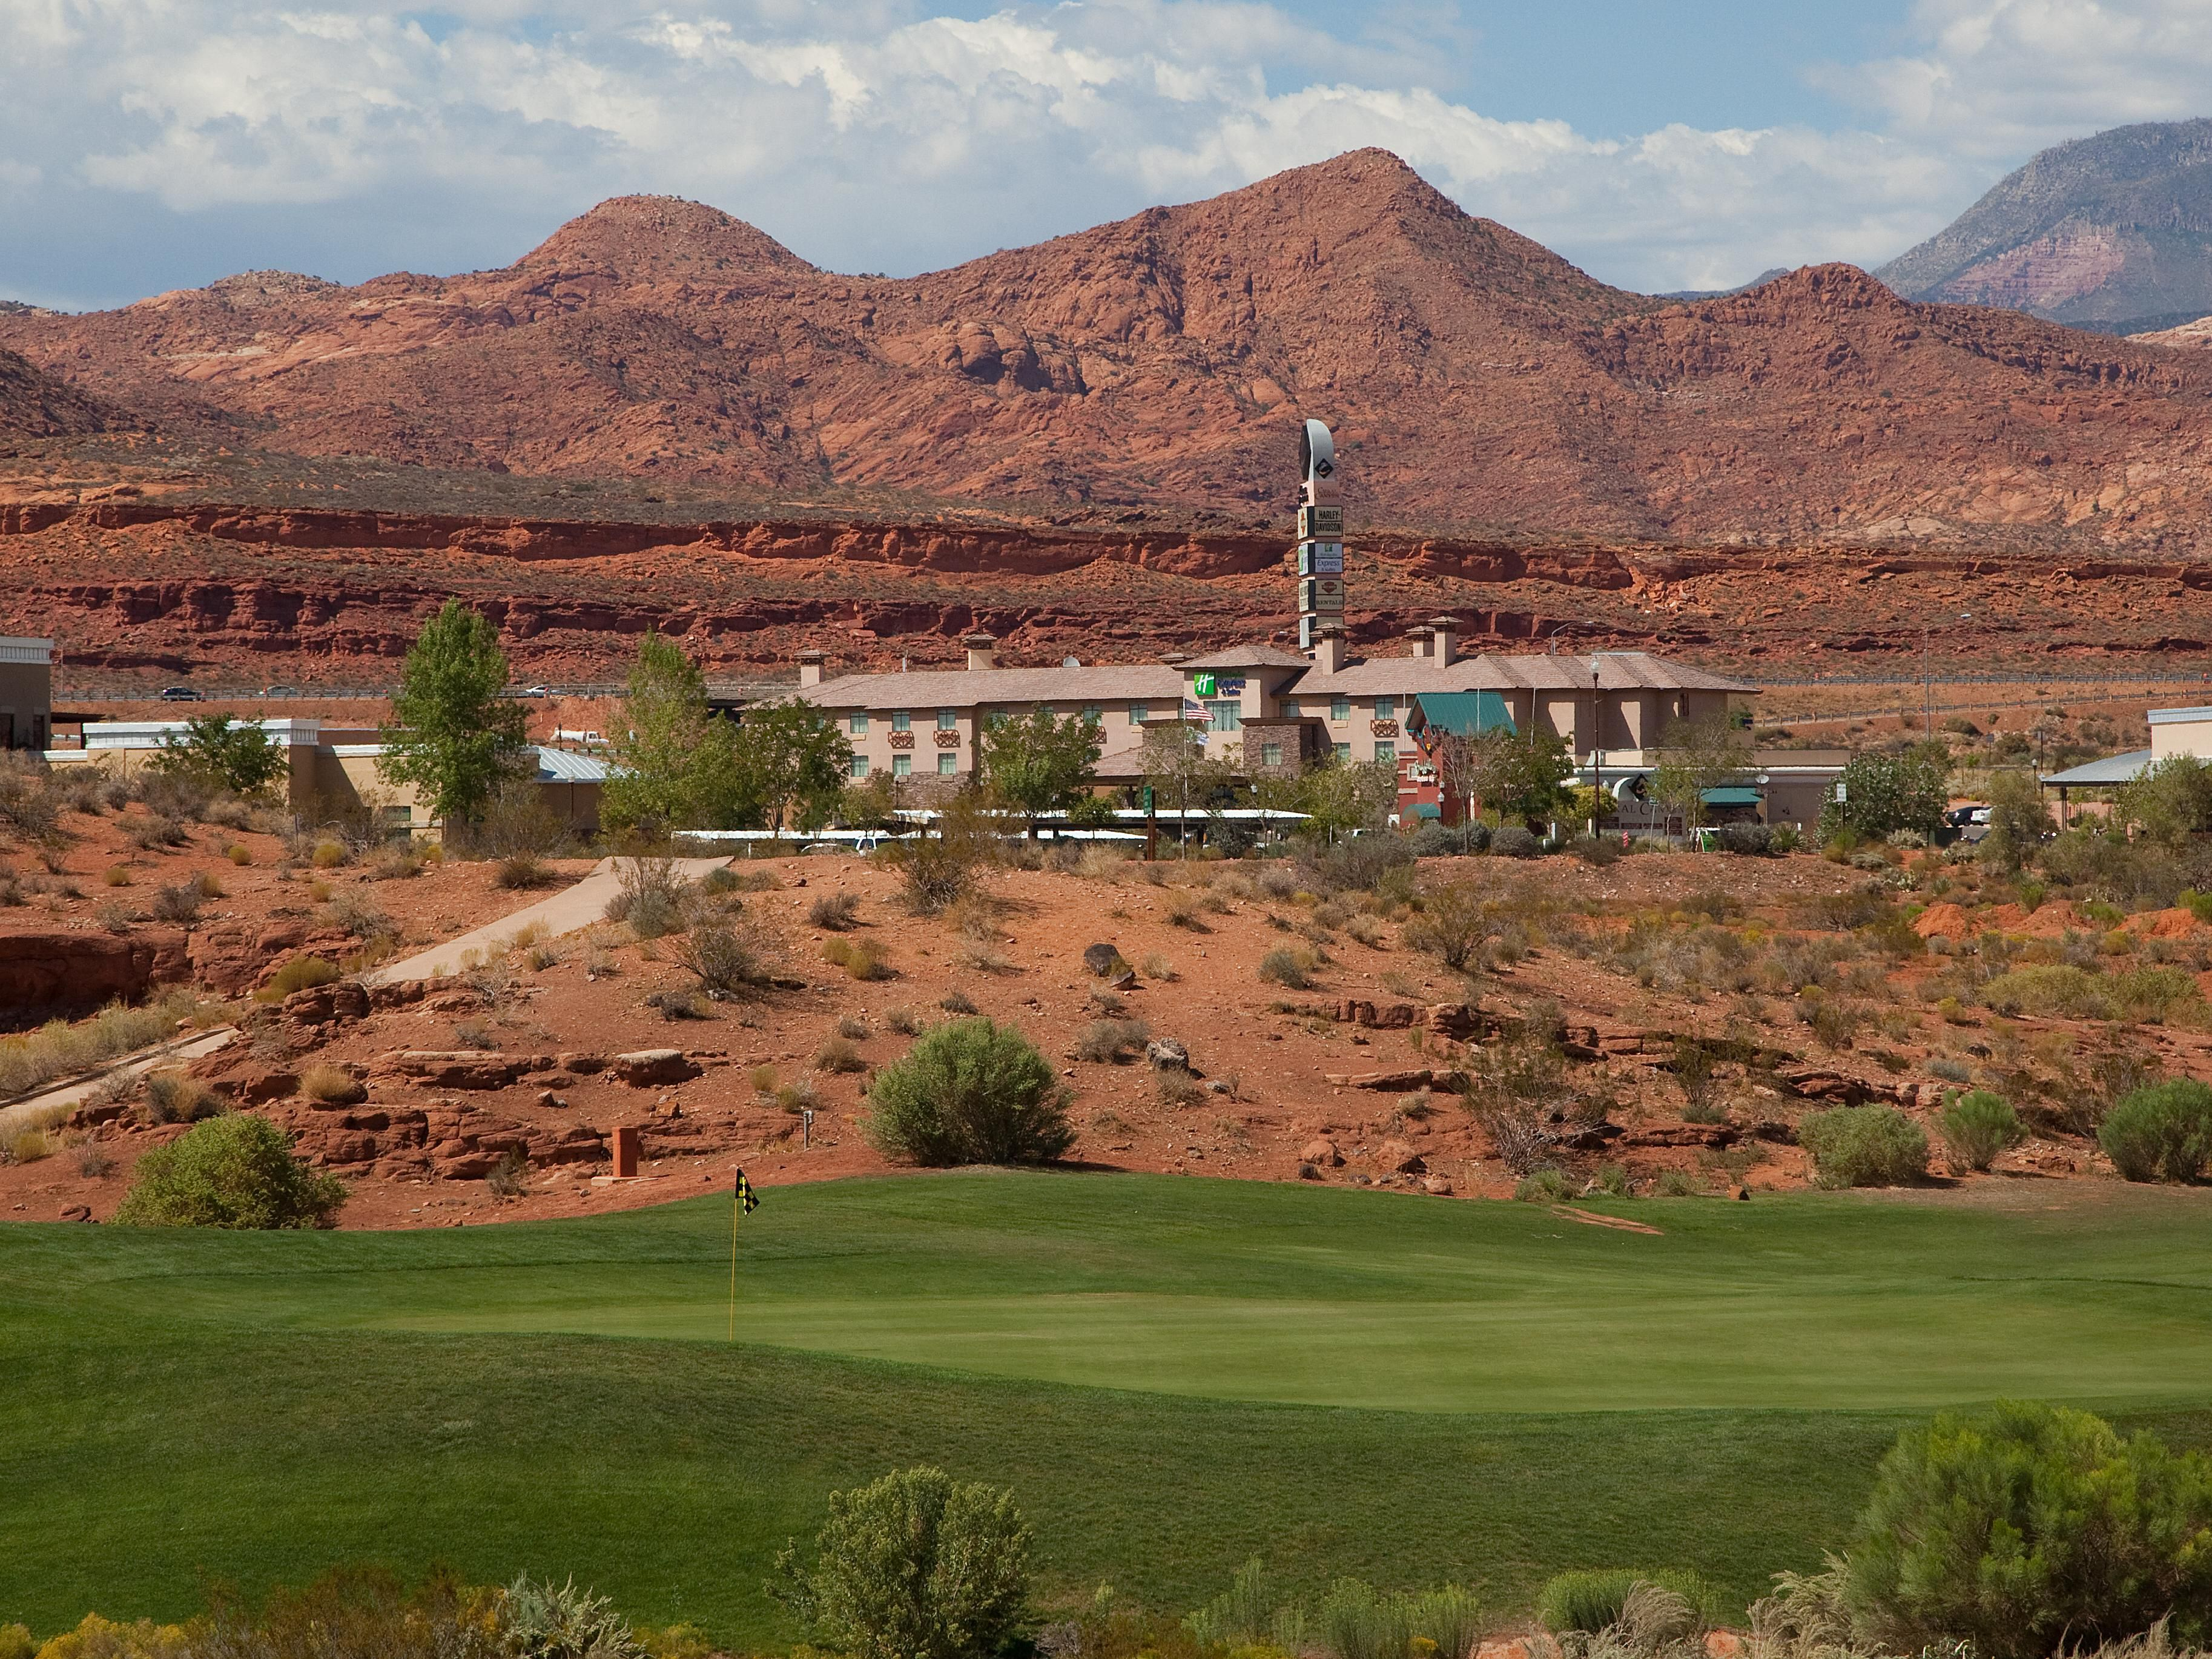 Our hotel is situated in the heart of Utah's red rock country.